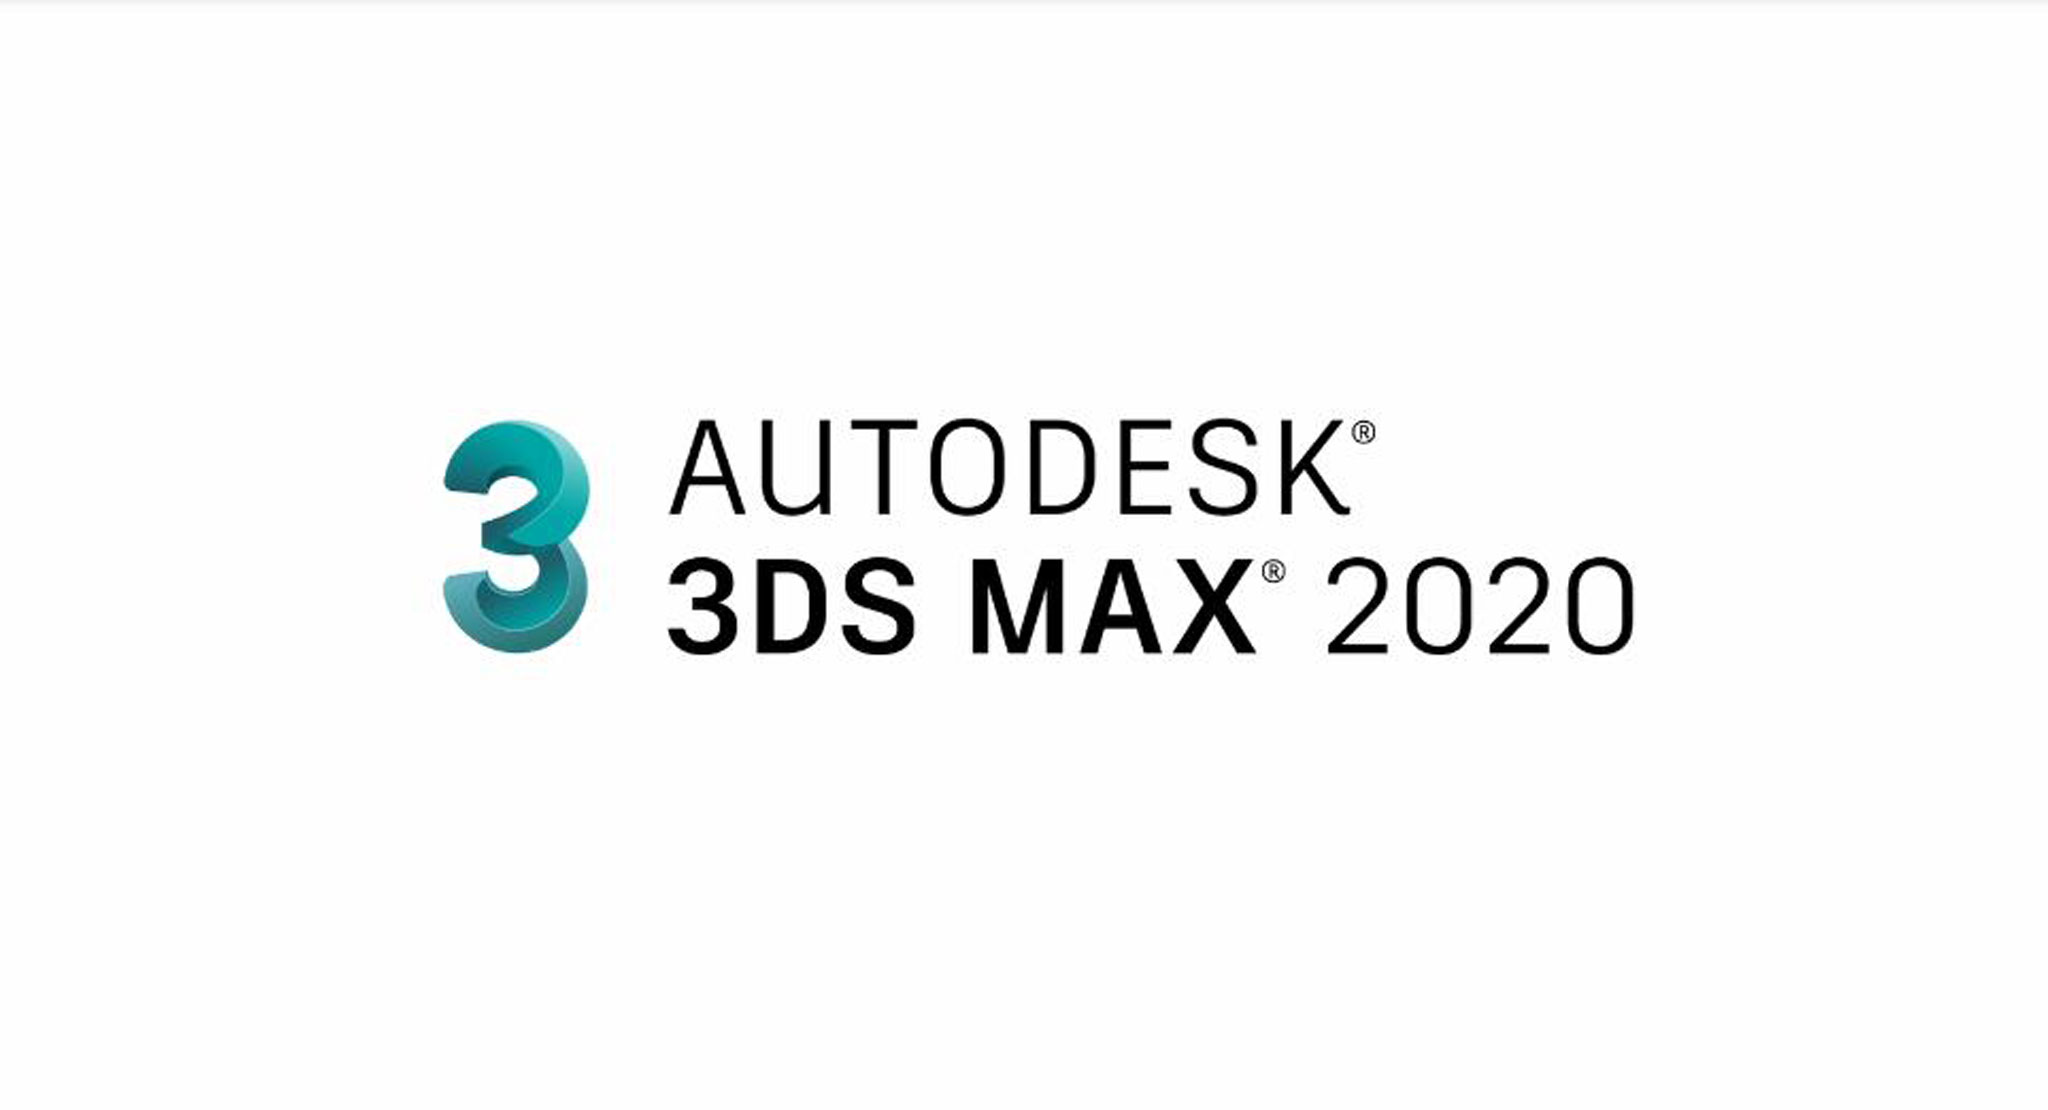 Autodesk 3ds Max 2020 Available Now!